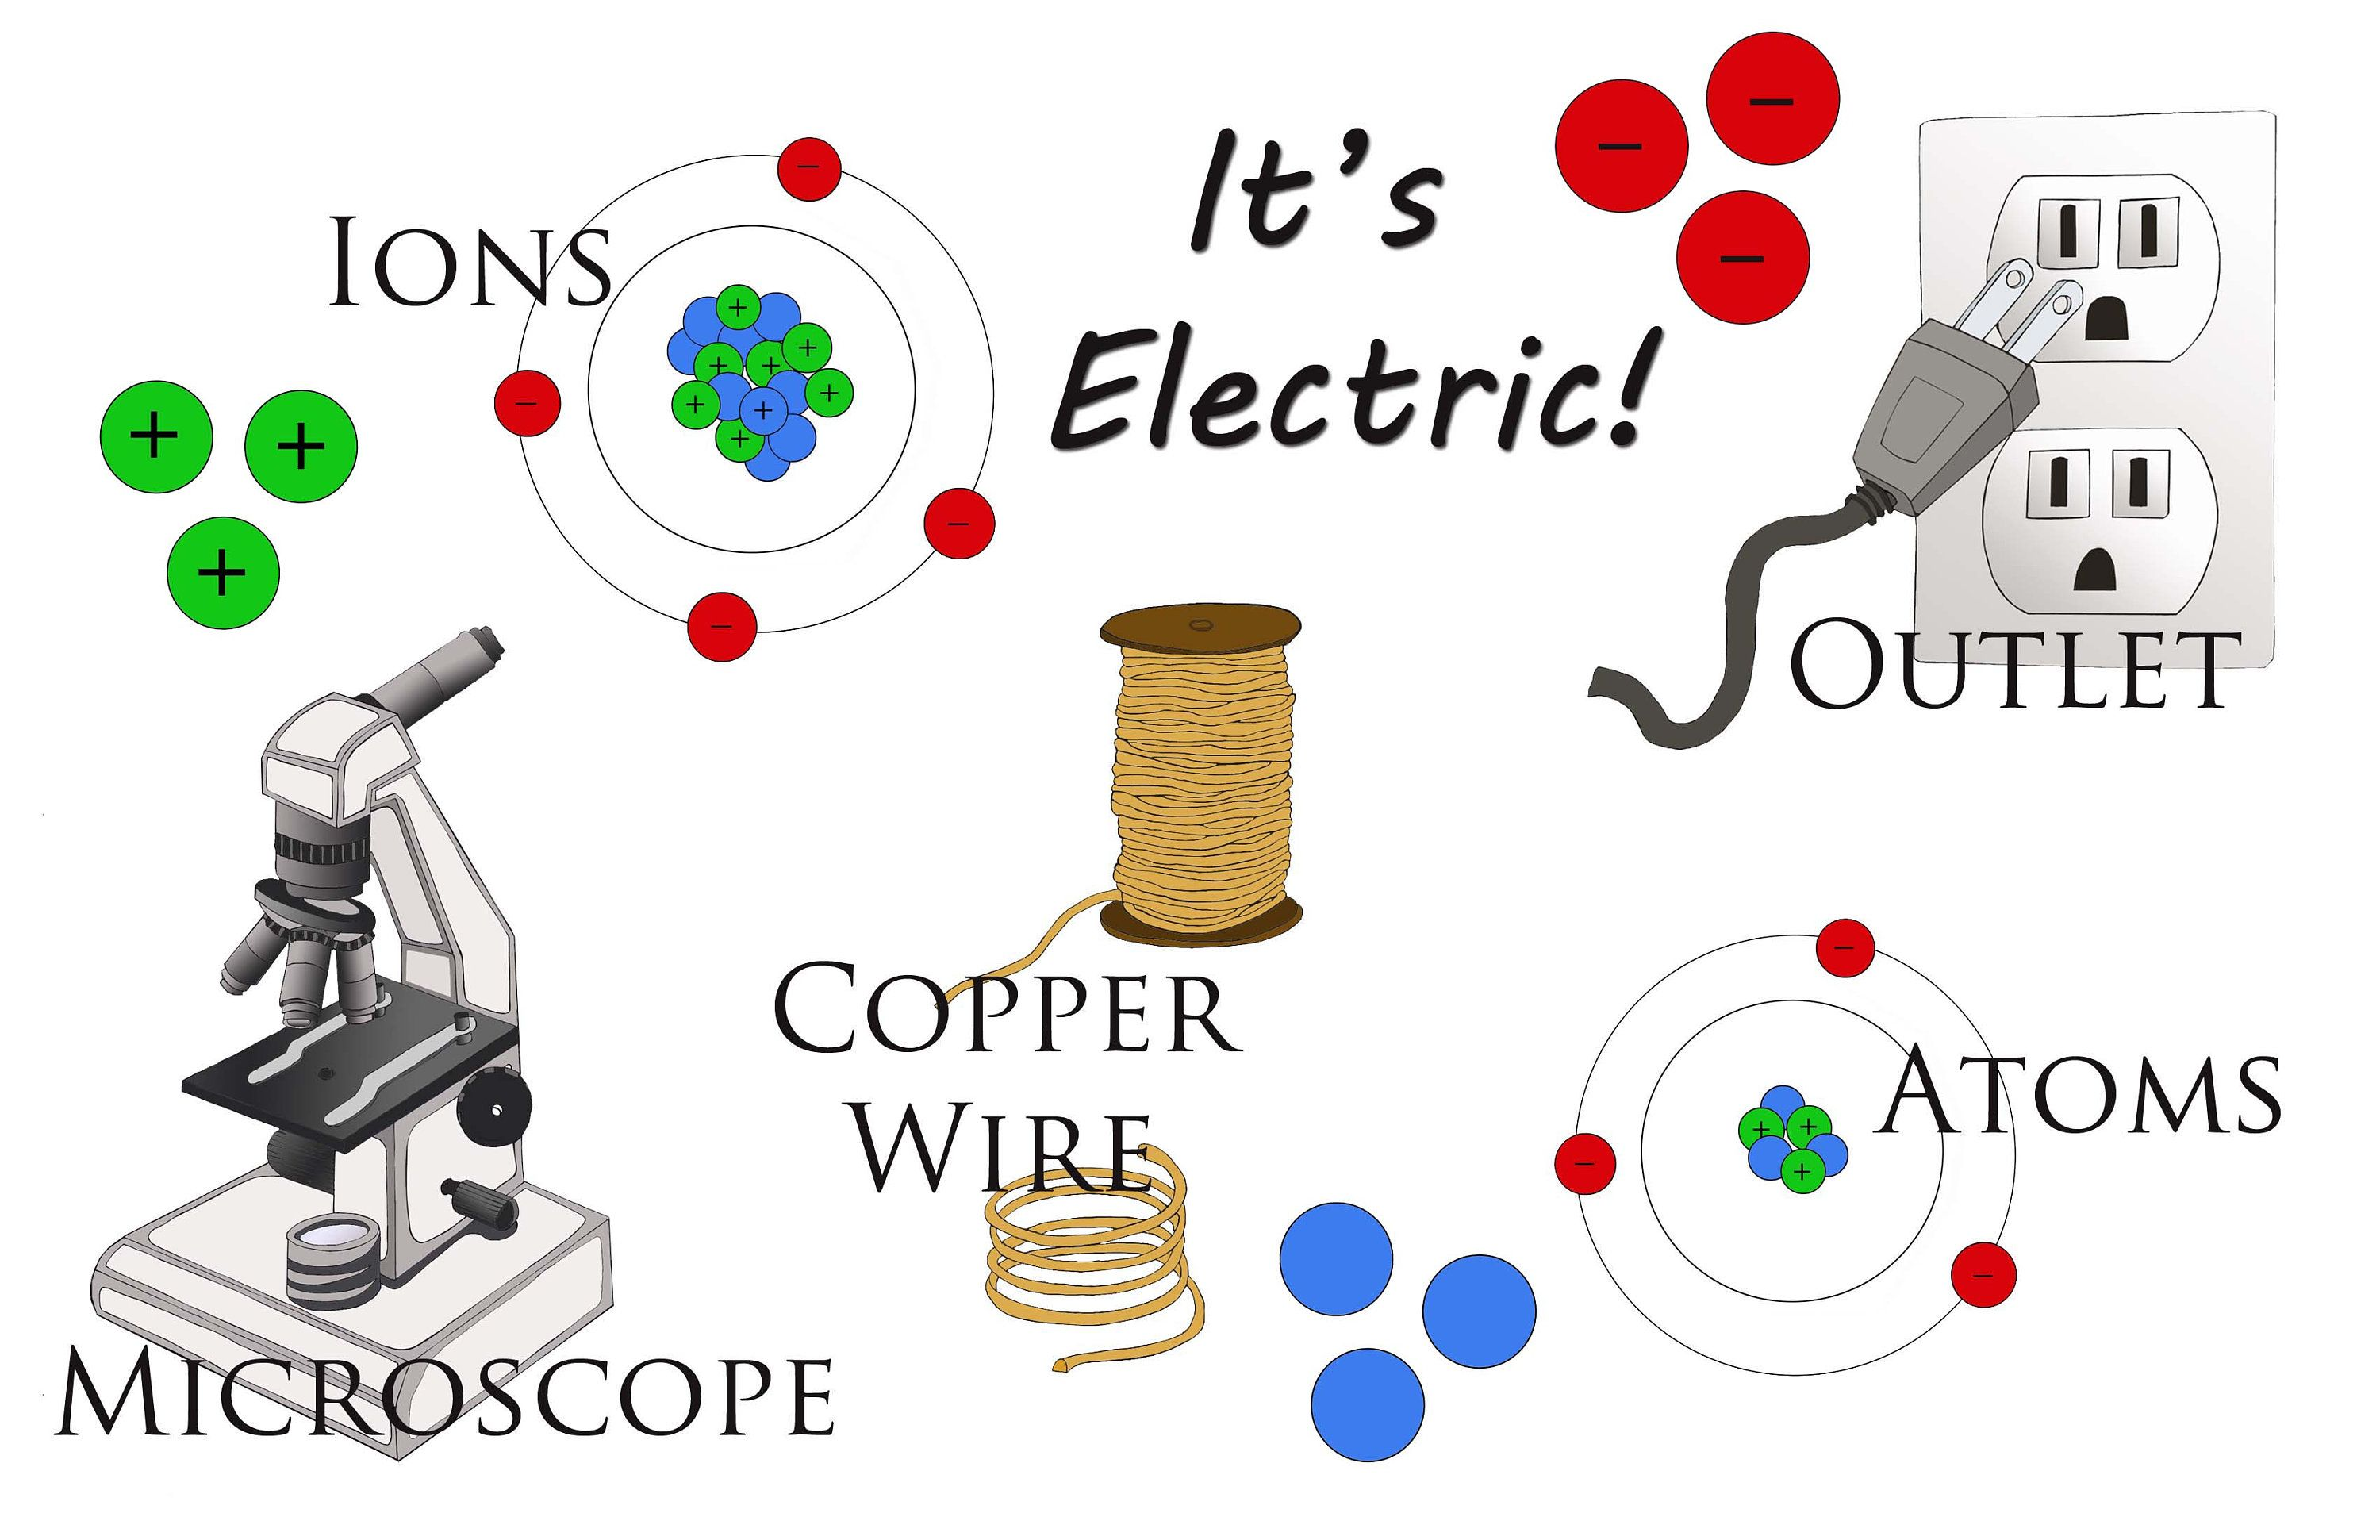 Clipart, downloadable, Electricity, Atoms, Ions, copper wire ...